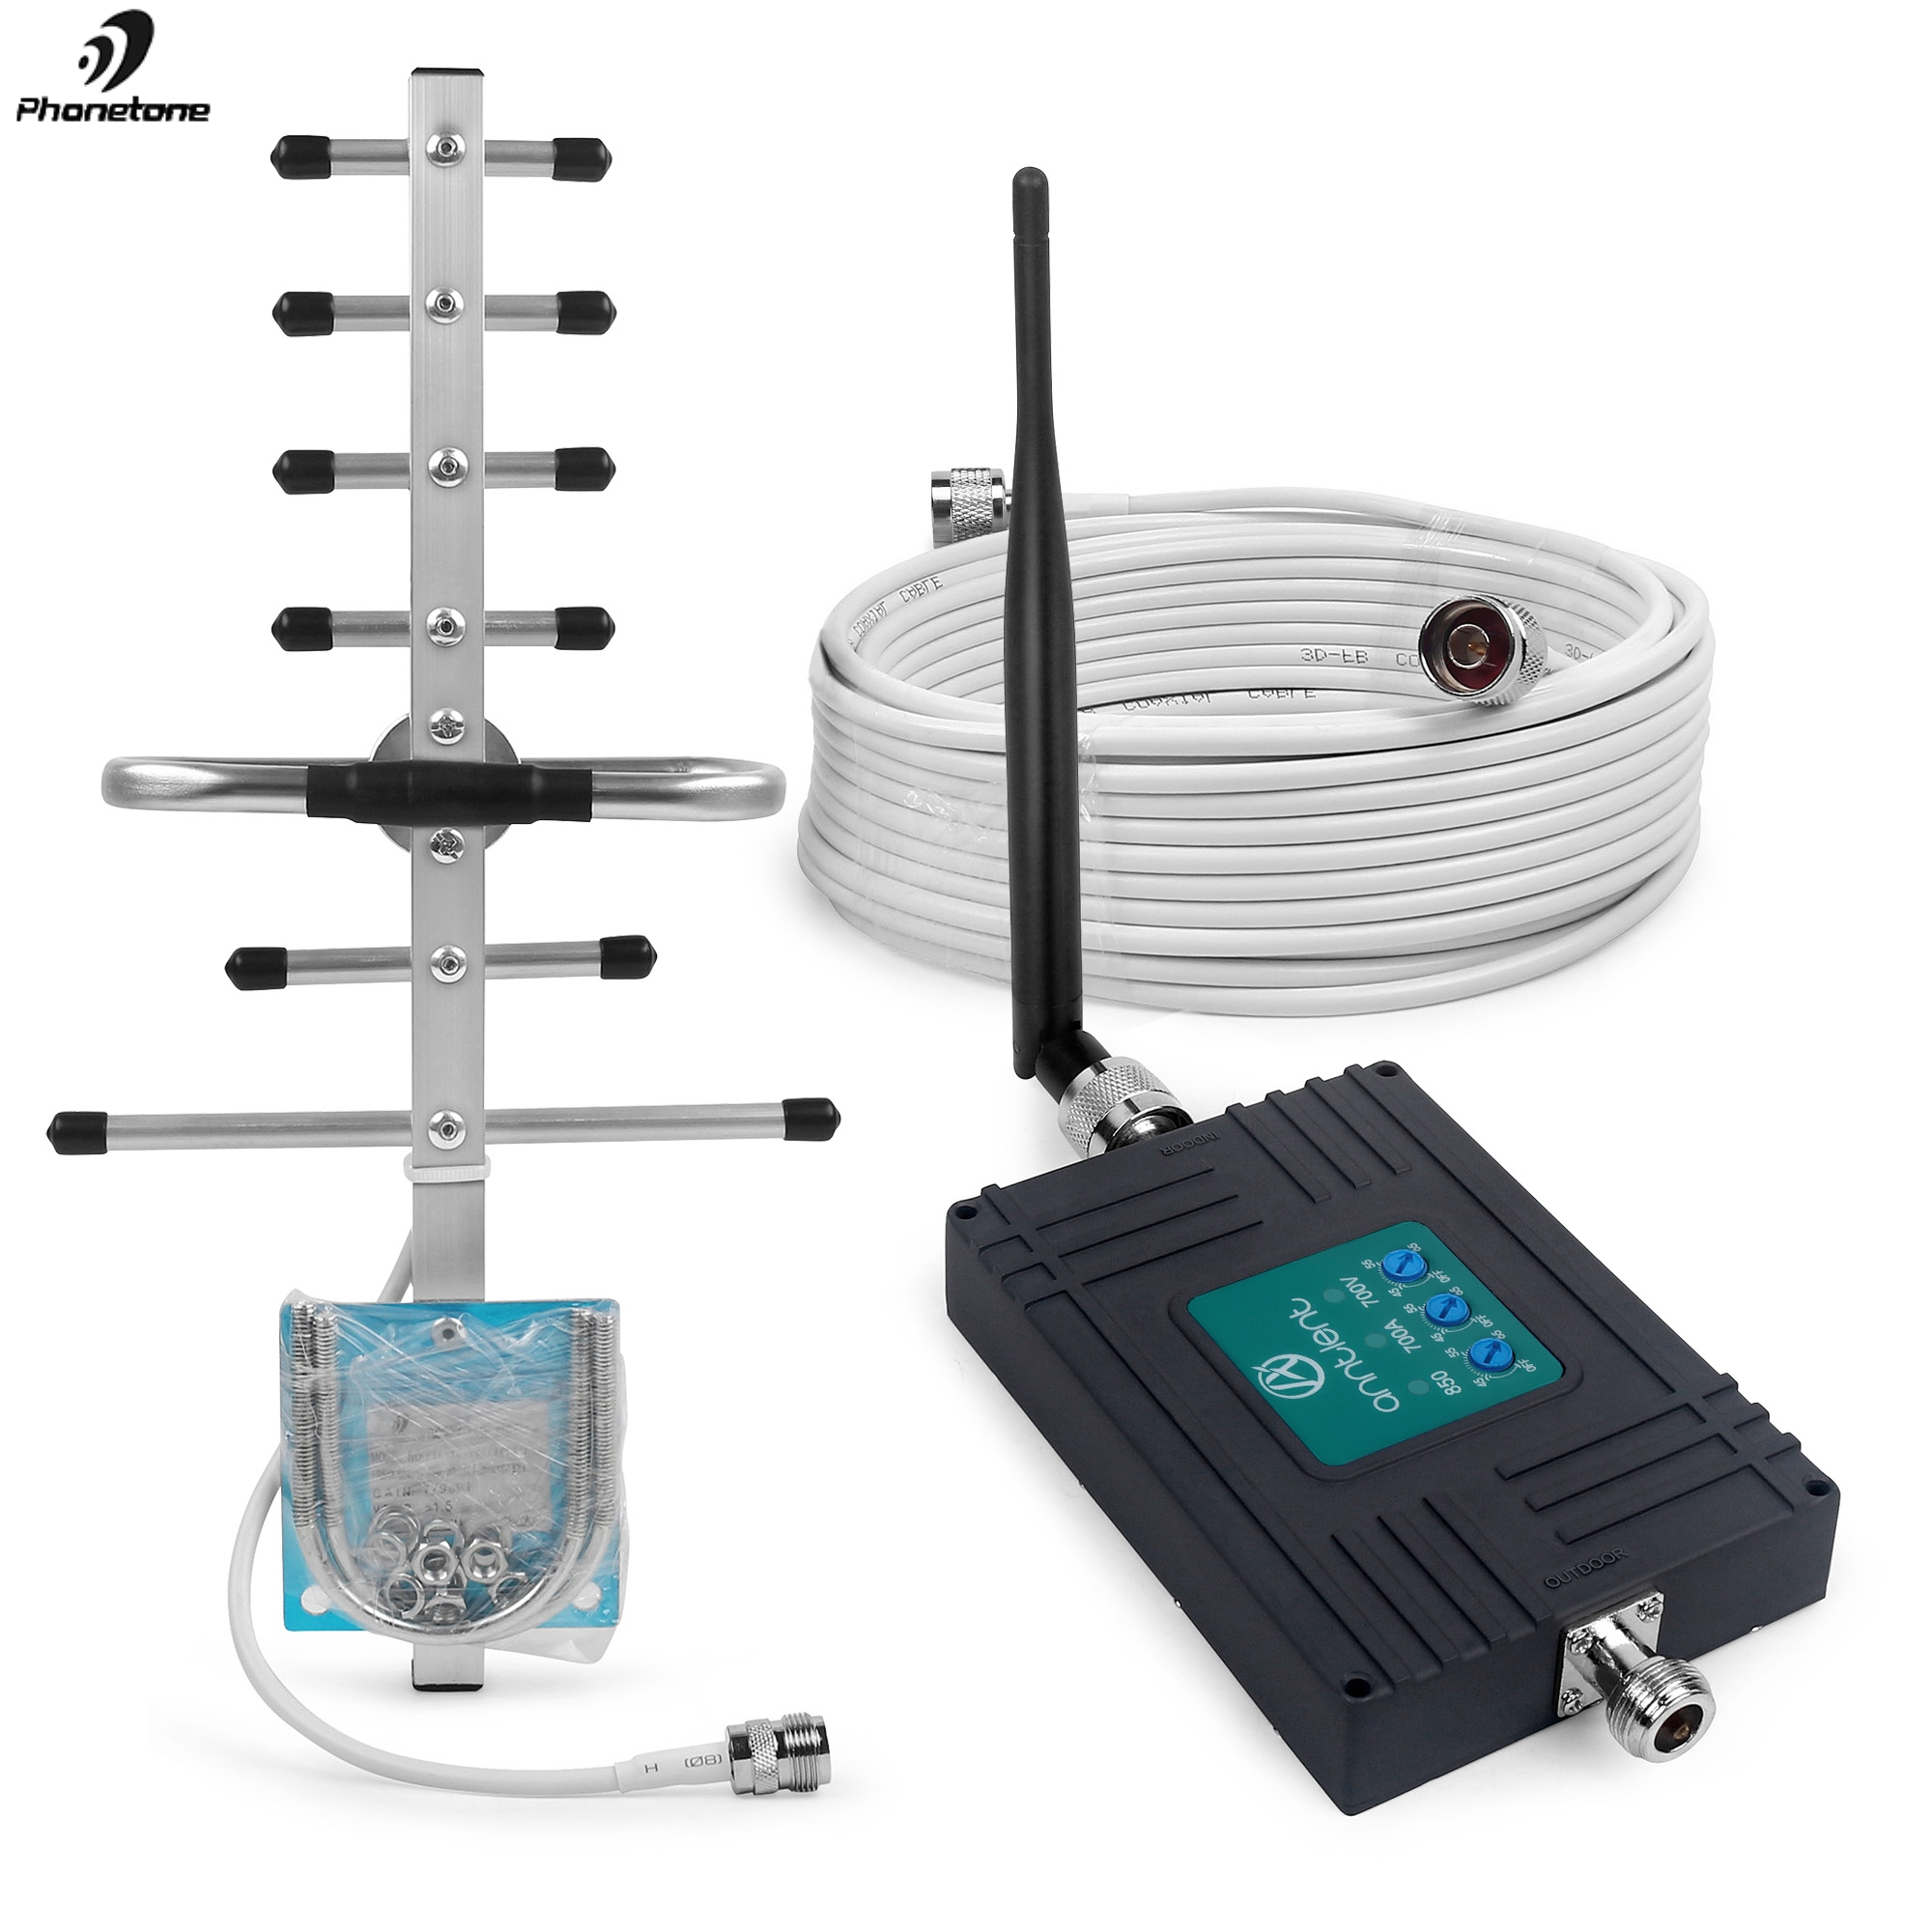 AT&T Verizon Cell Phone Signal Booster For US/CA Band 12,13,17,5 Phone Booster 850/700MHz 2G/3/4G Signal Repeater For Voice/Data